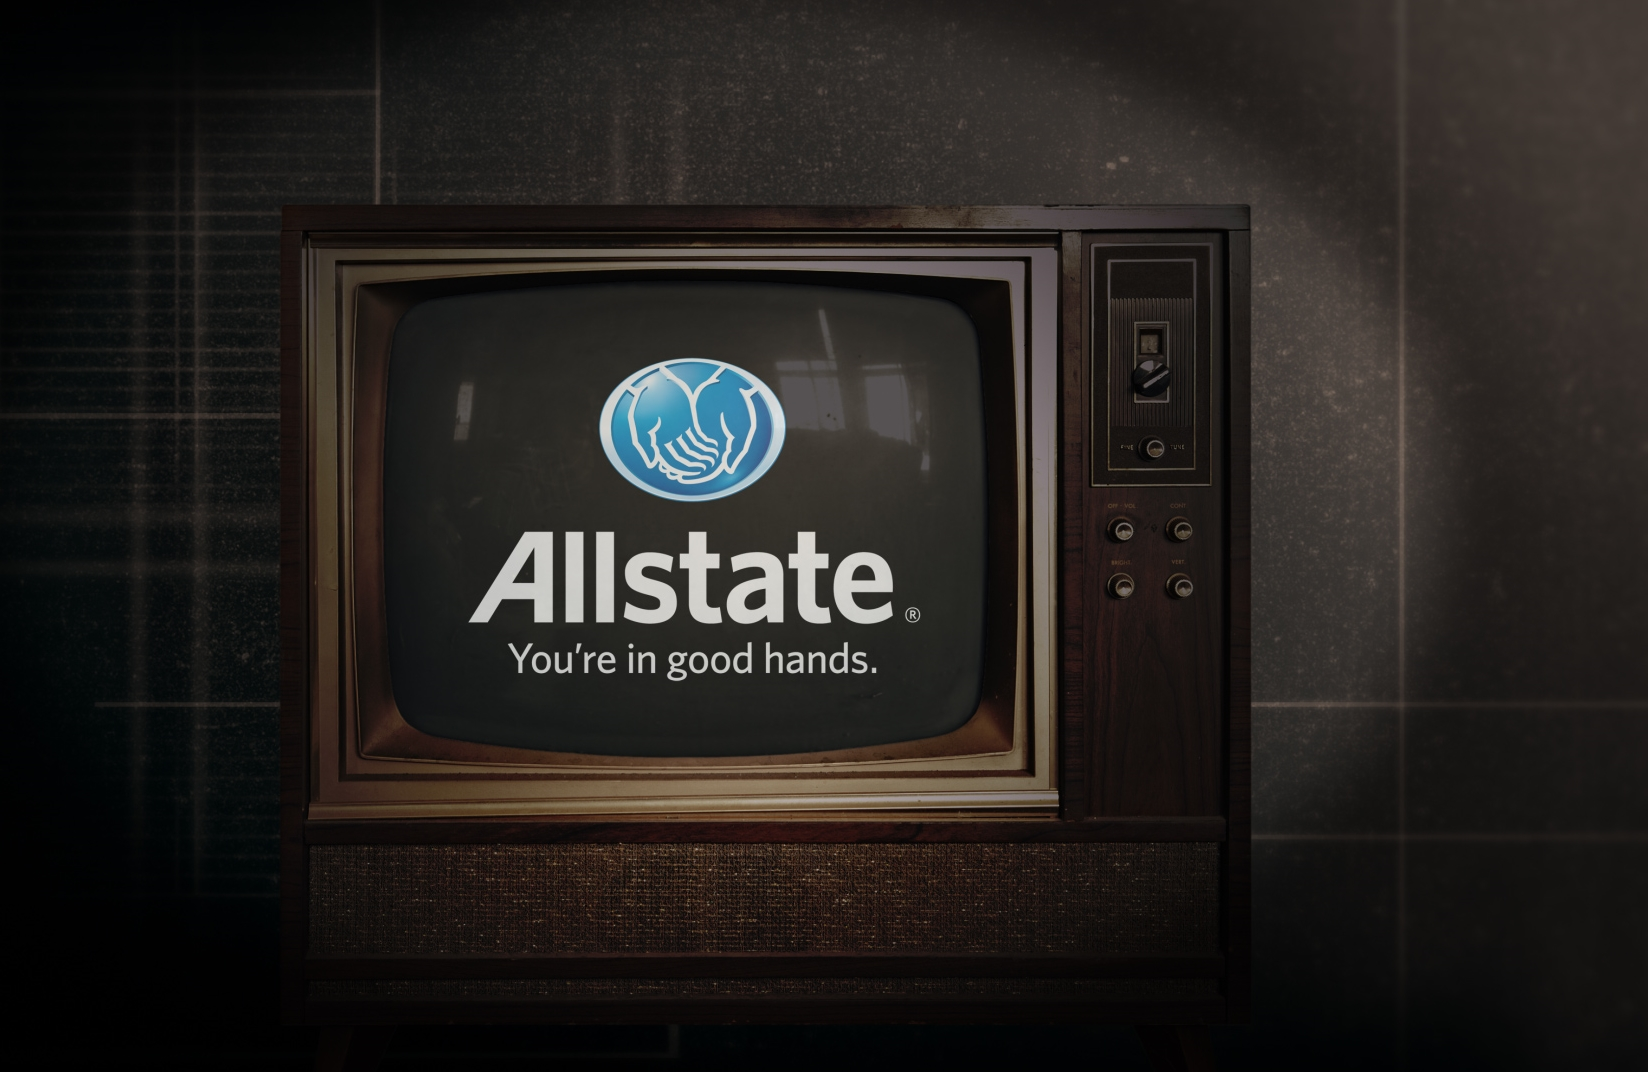 ALL STATE<strong>Investigation Discovery</strong><a href=/allstate-1>VIEW</a>